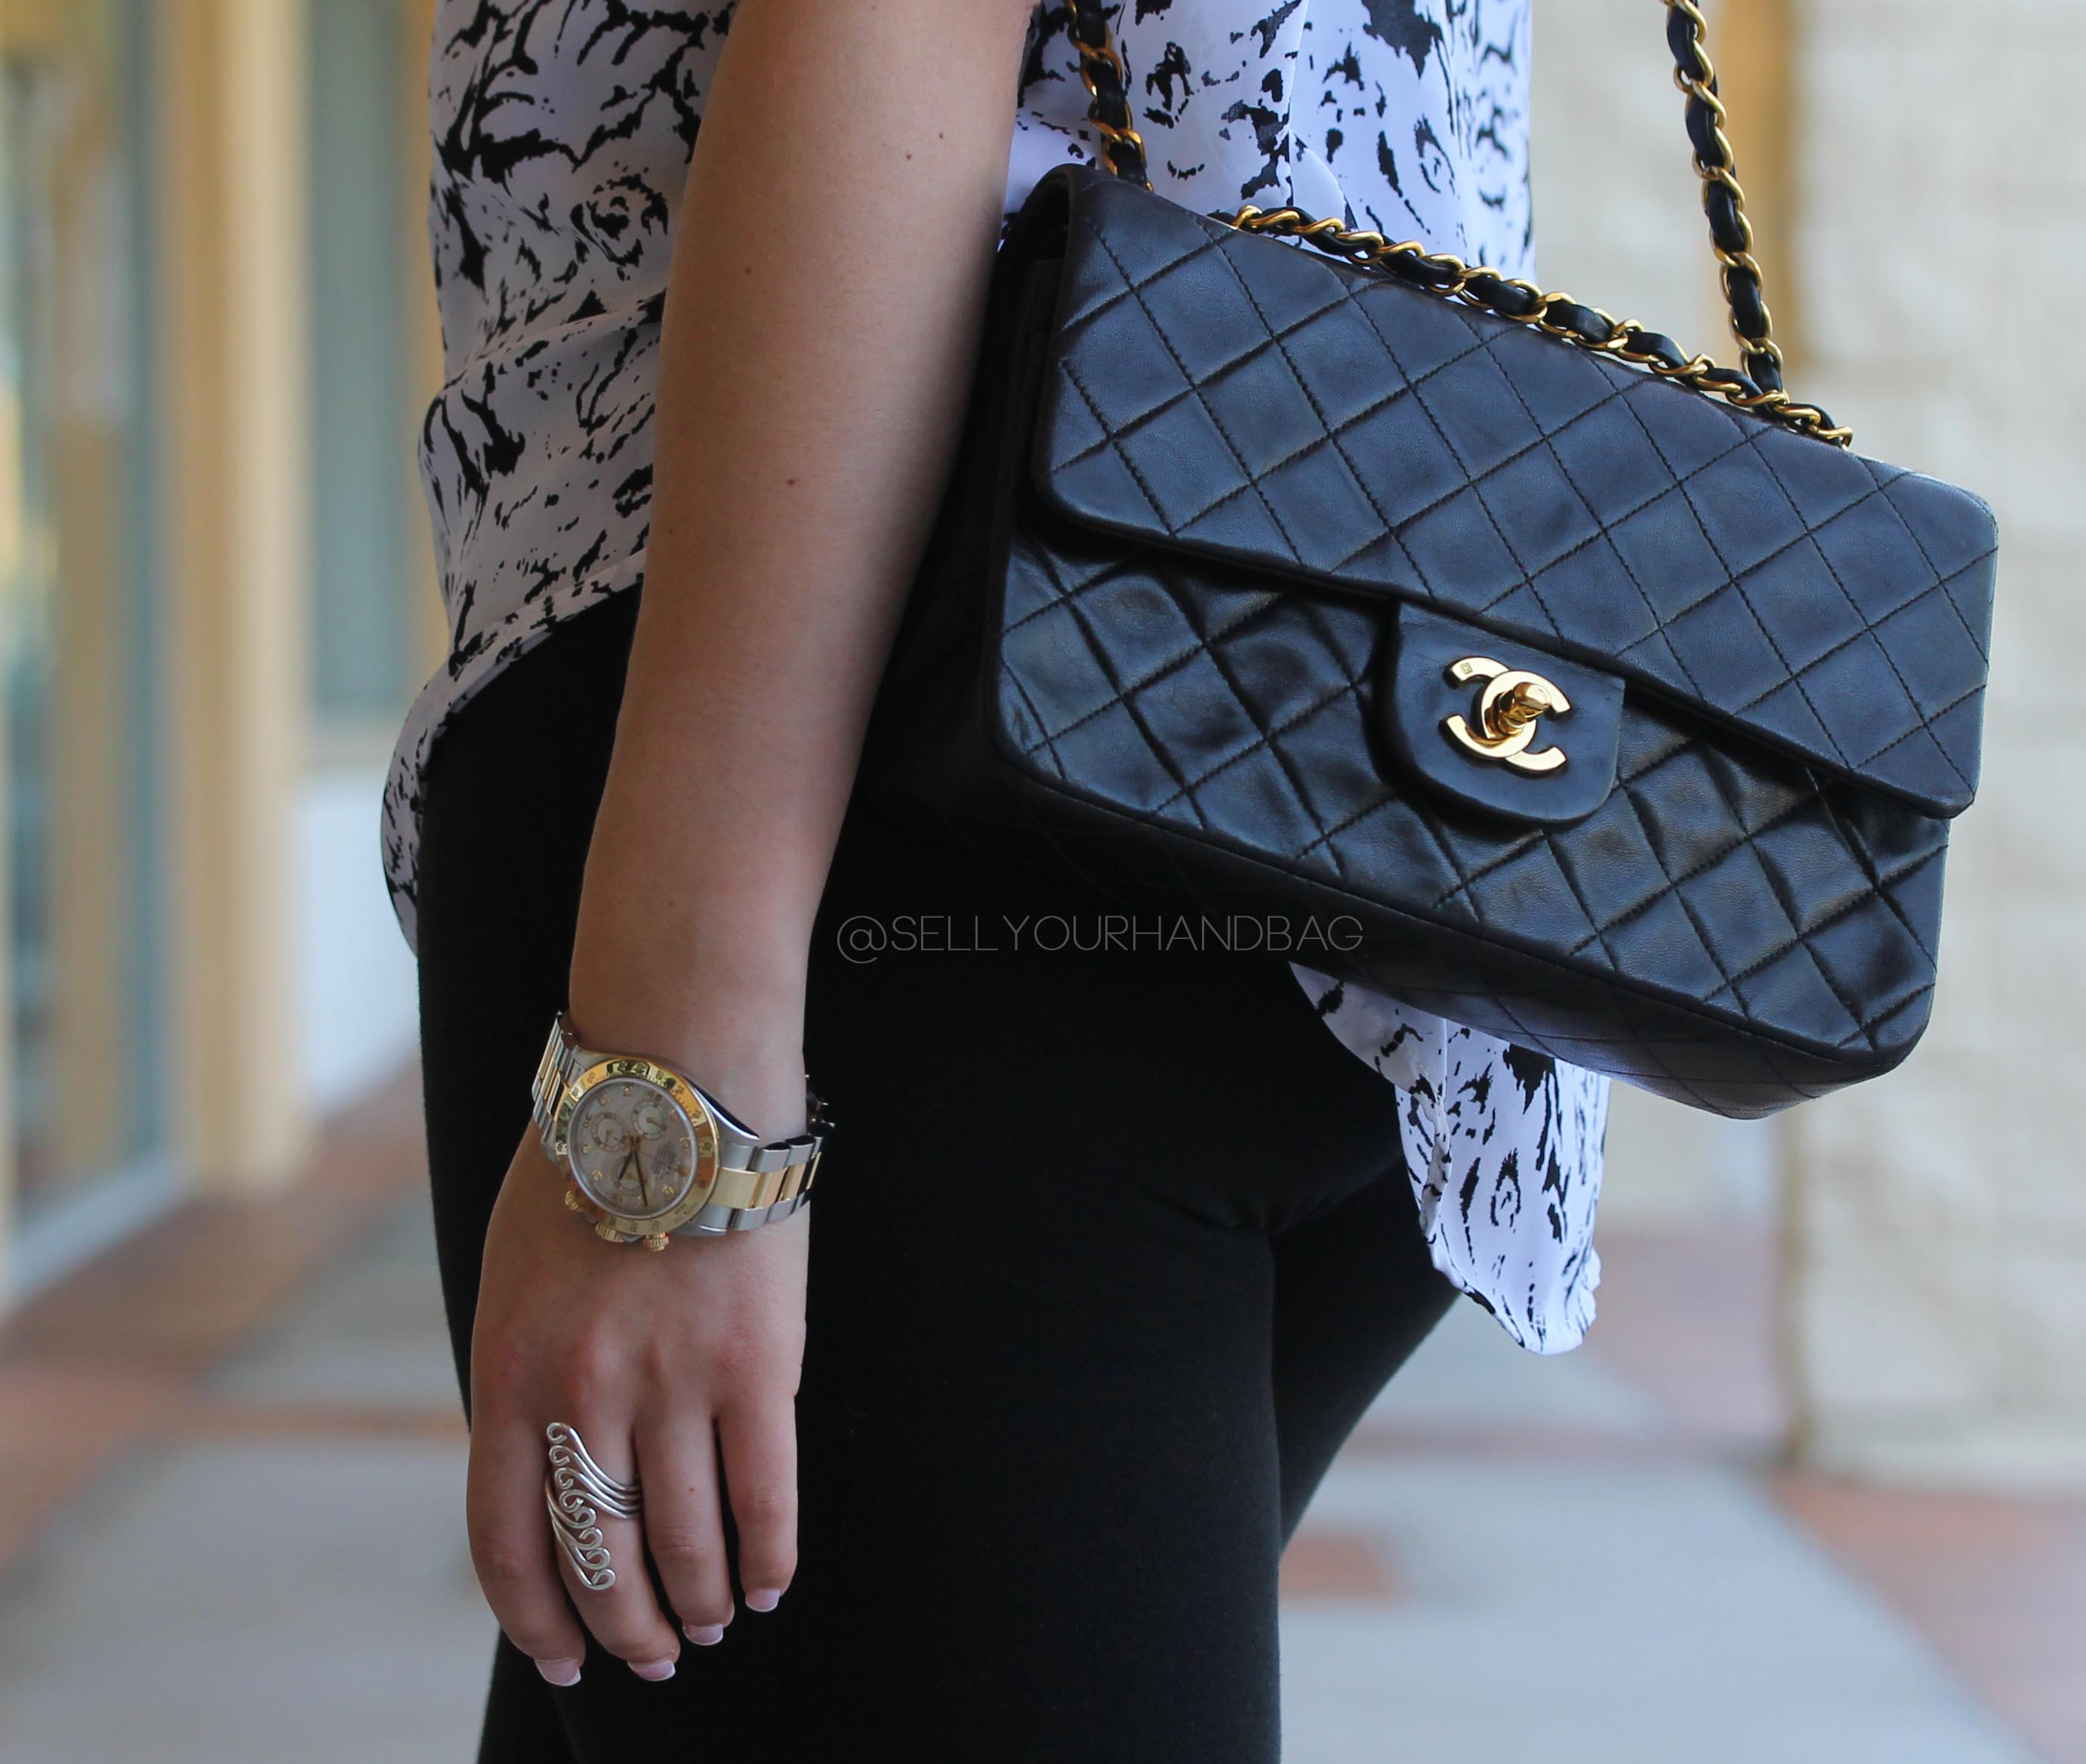 Chanel le Boy bag pre-owned Boca raton Chanel classic flap vintage Boca  Raton 39d7d4592f01c